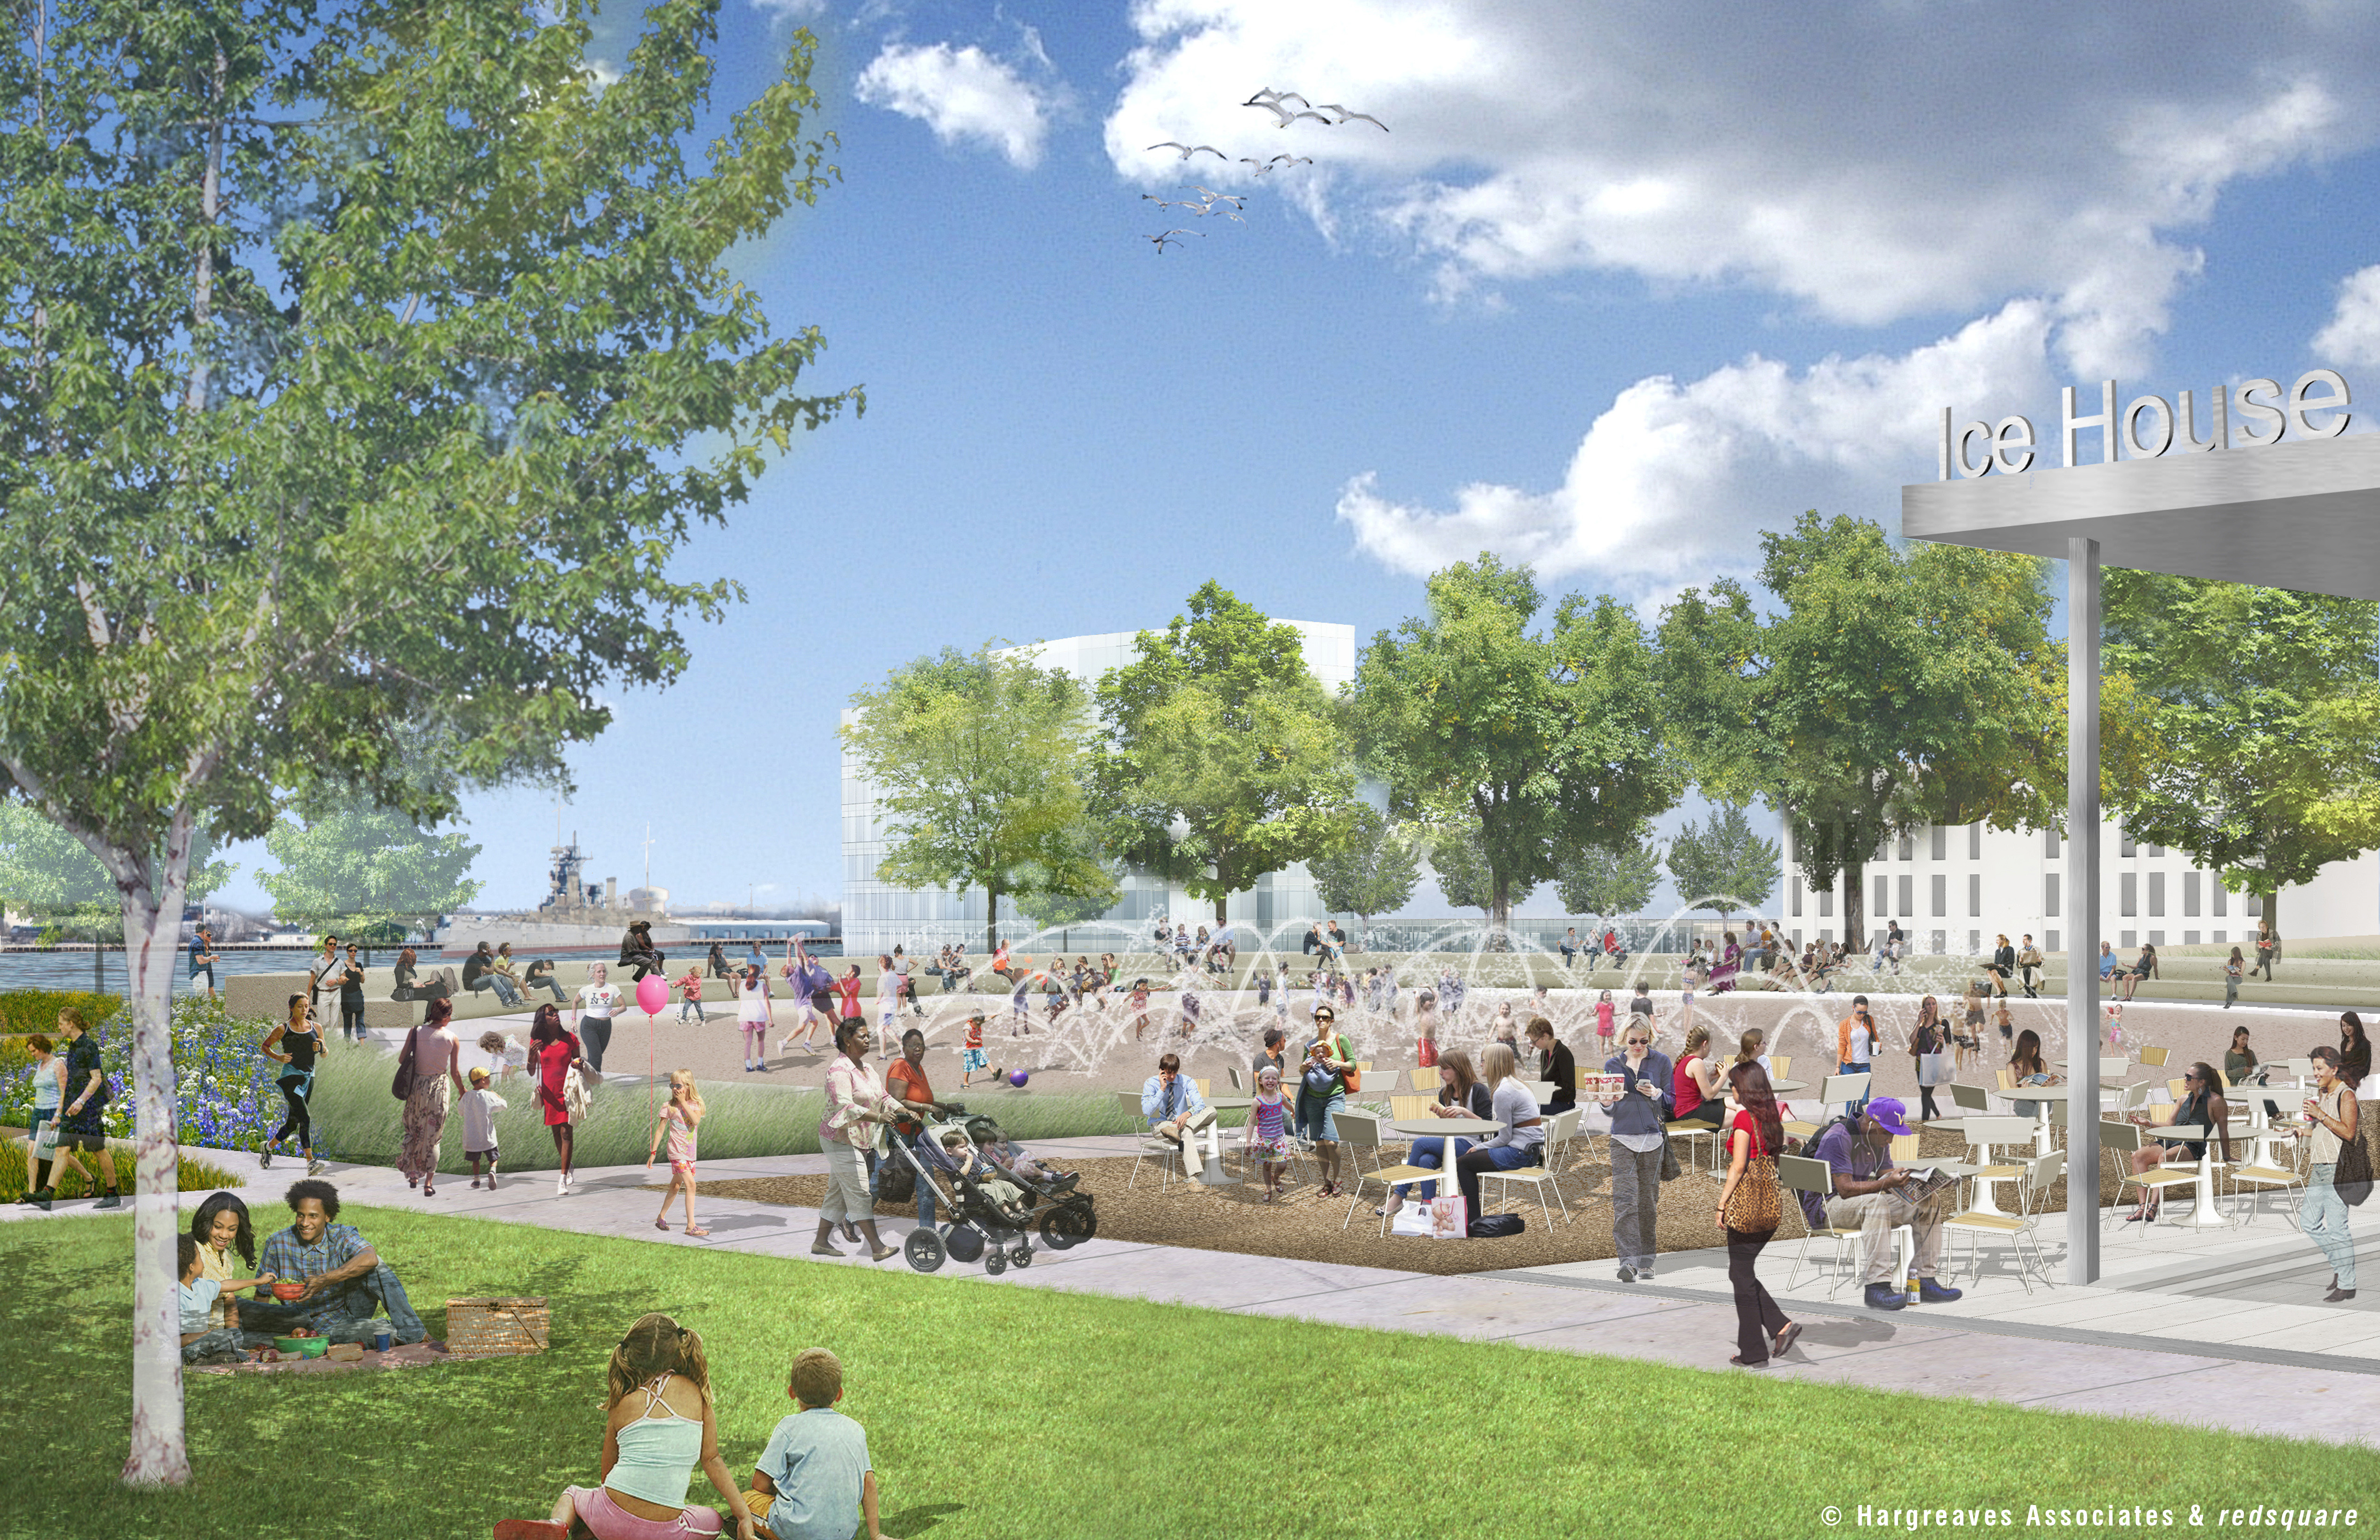 Penn's Landing Park in summer with sprayground,© Hargreaves Associates & redsquare